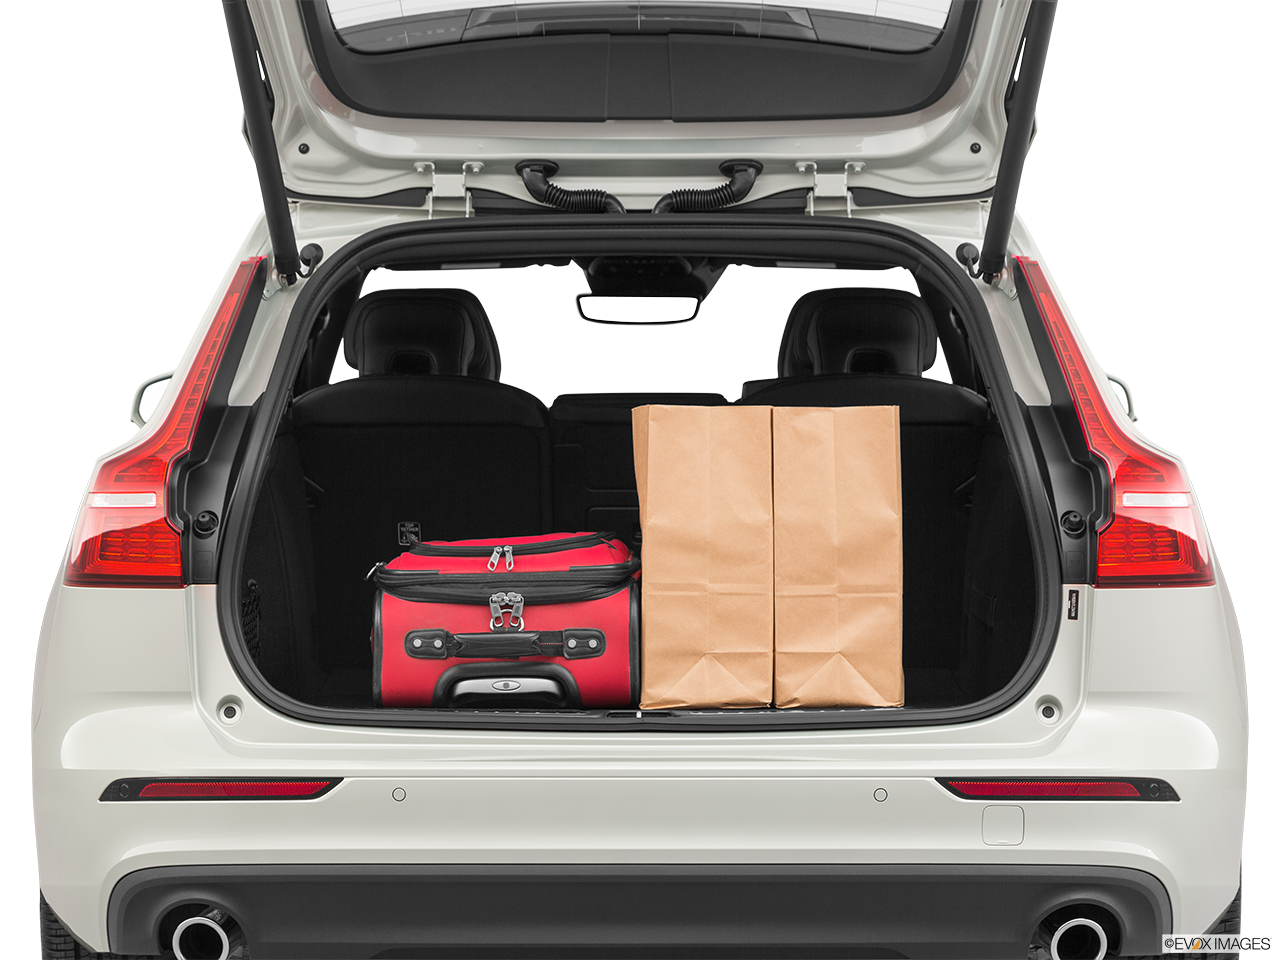 Trunk view of the Volvo V60 PHEV